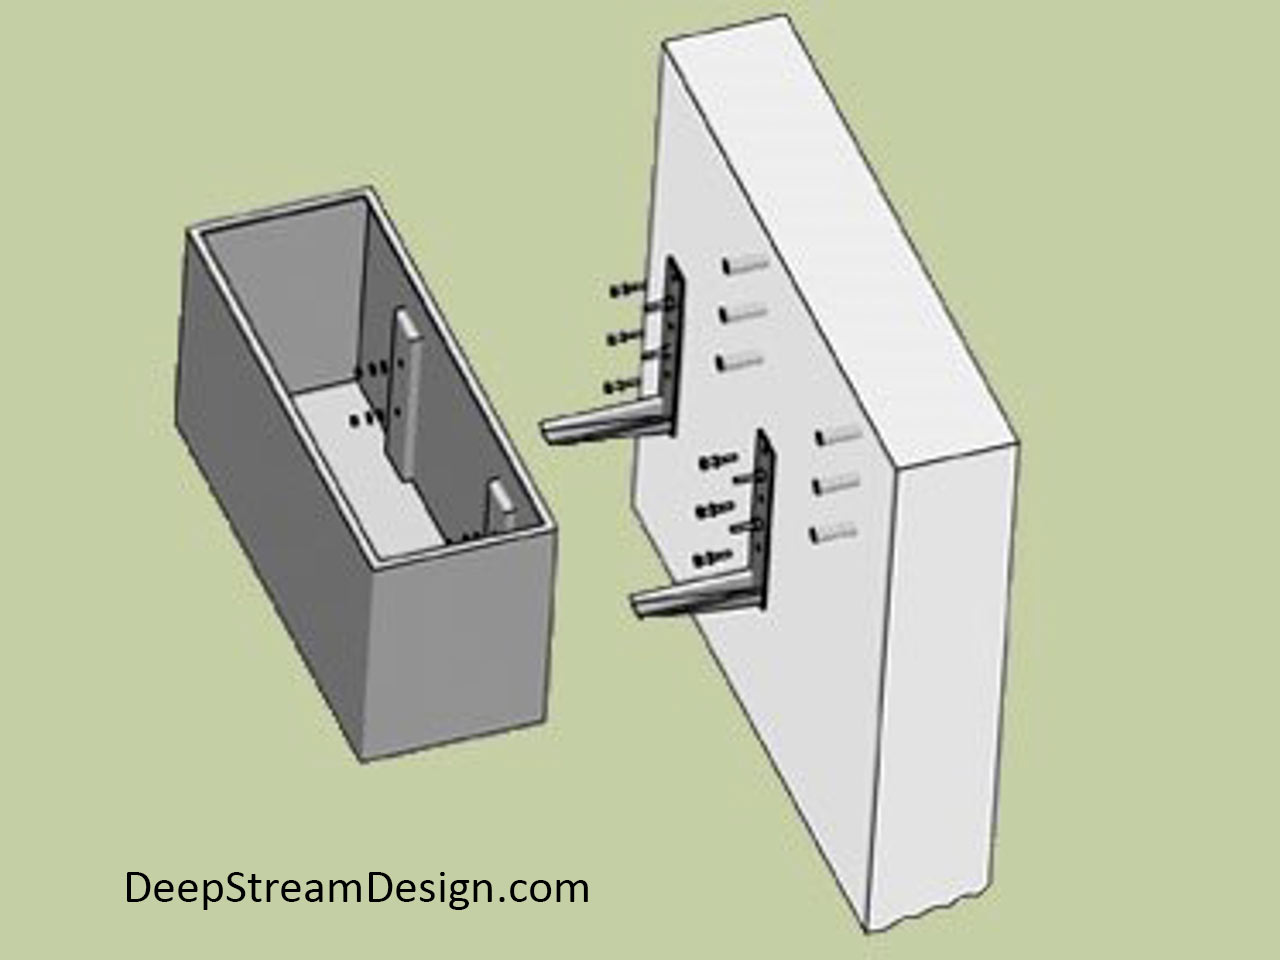 Detailed sketch showing the mounting system for the Wilshire Commercial Hanging Planter Boxes to a vertical surface.